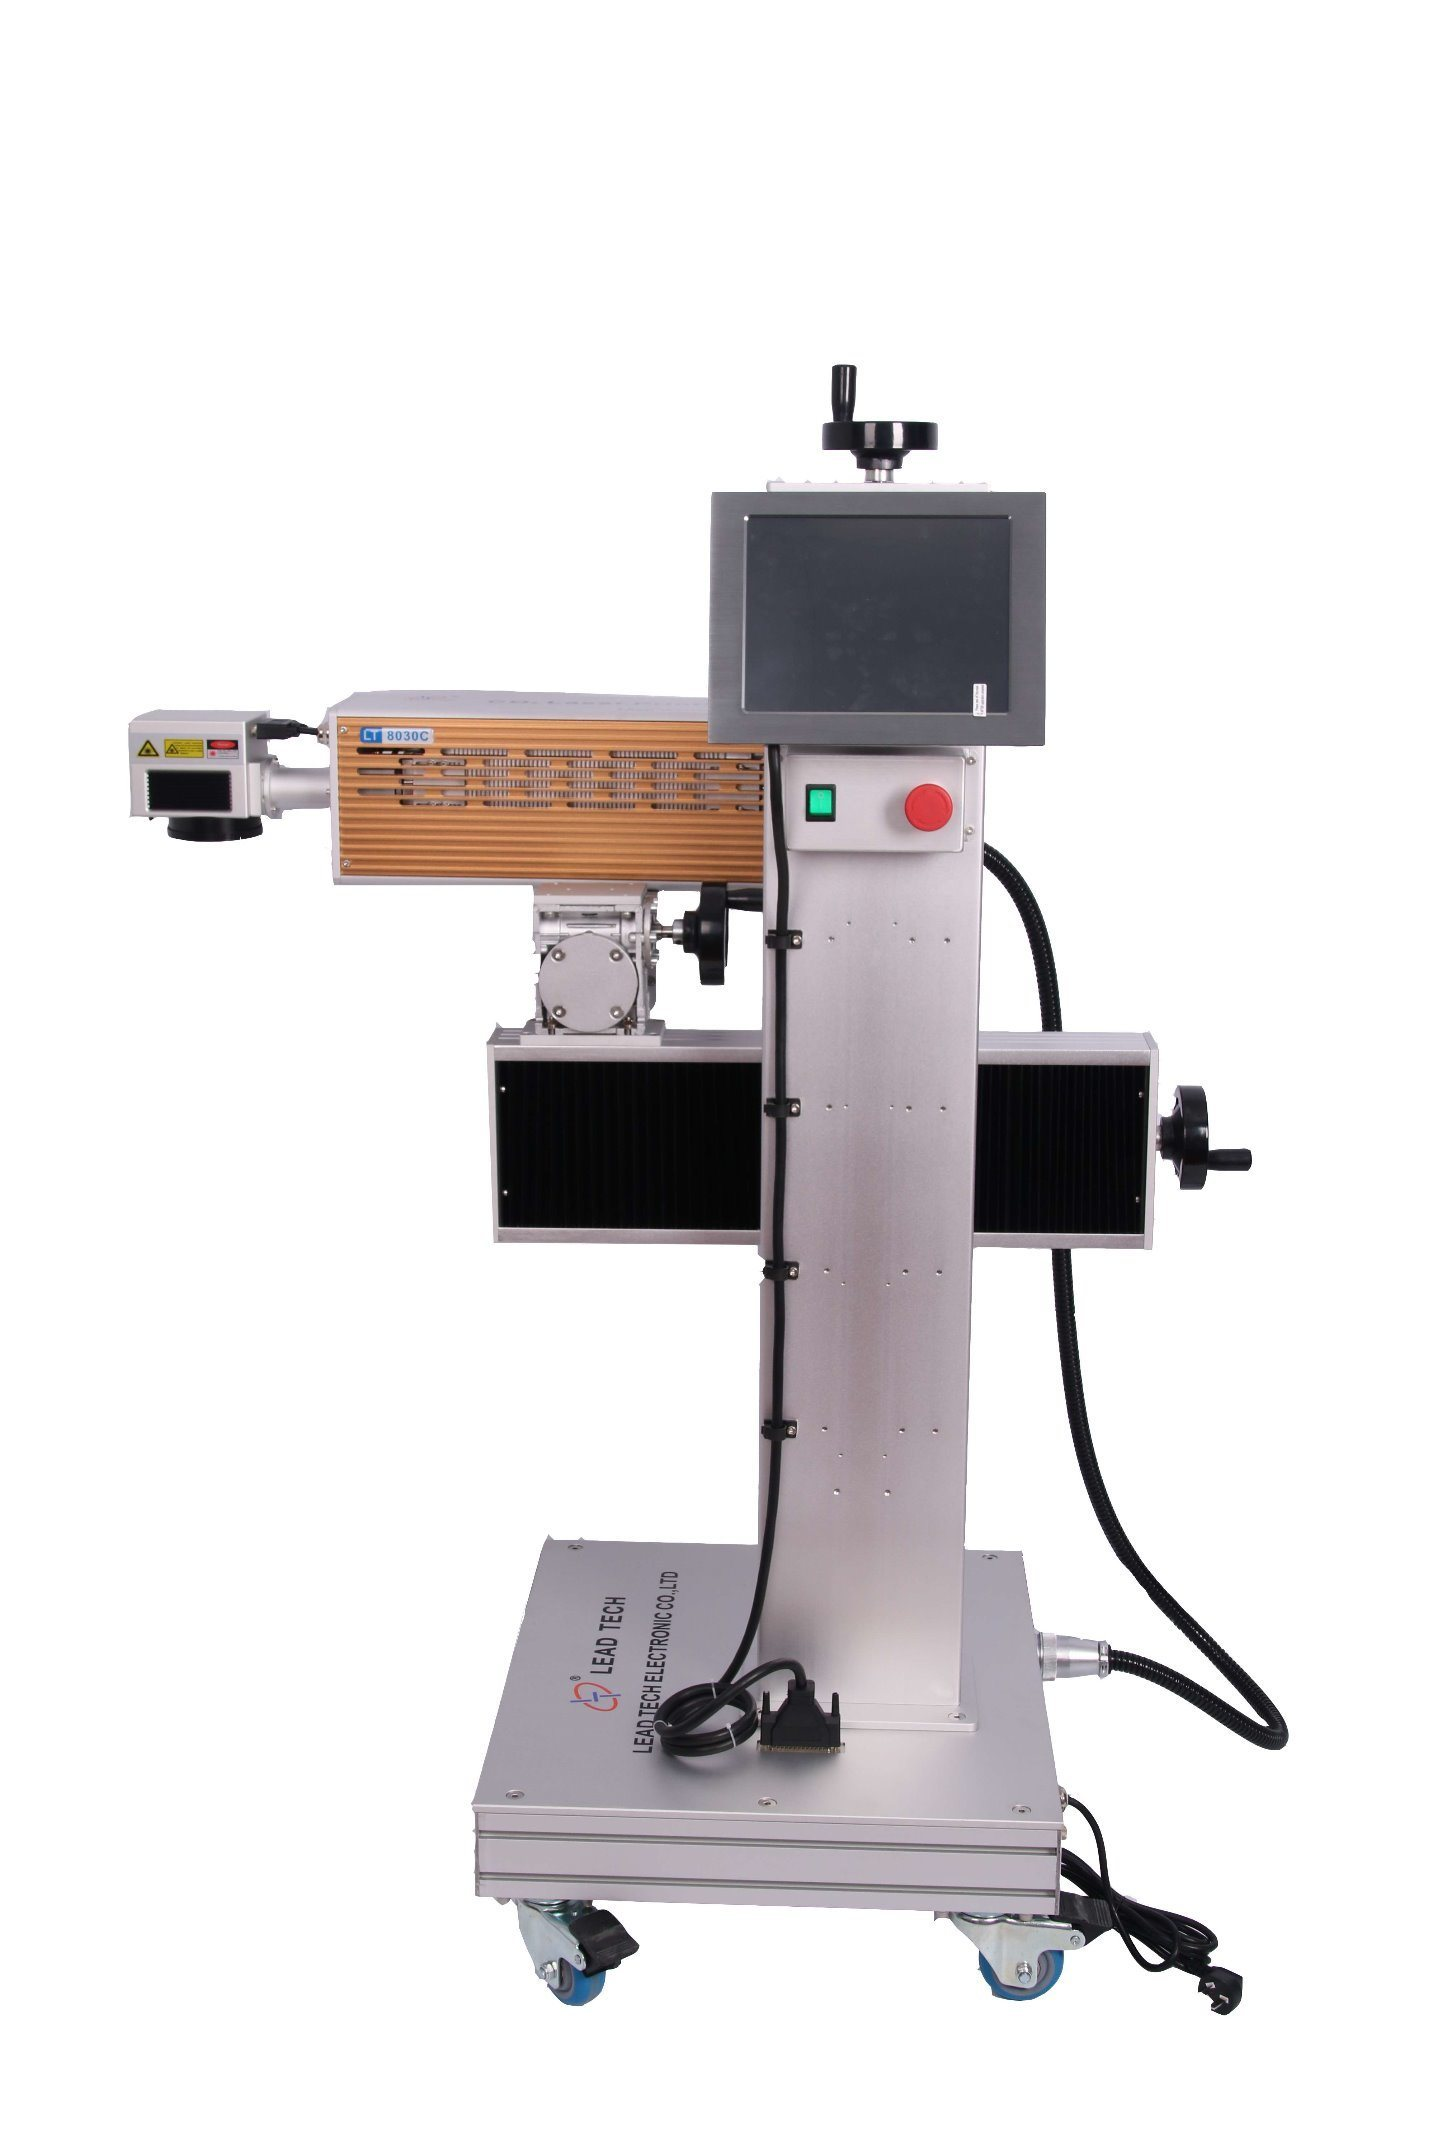 Lead Tech Lt8020c/Lt8030c CO2 20W/30W High Precision Digital Laser Engraving Marking Printer for Pipe/Leather